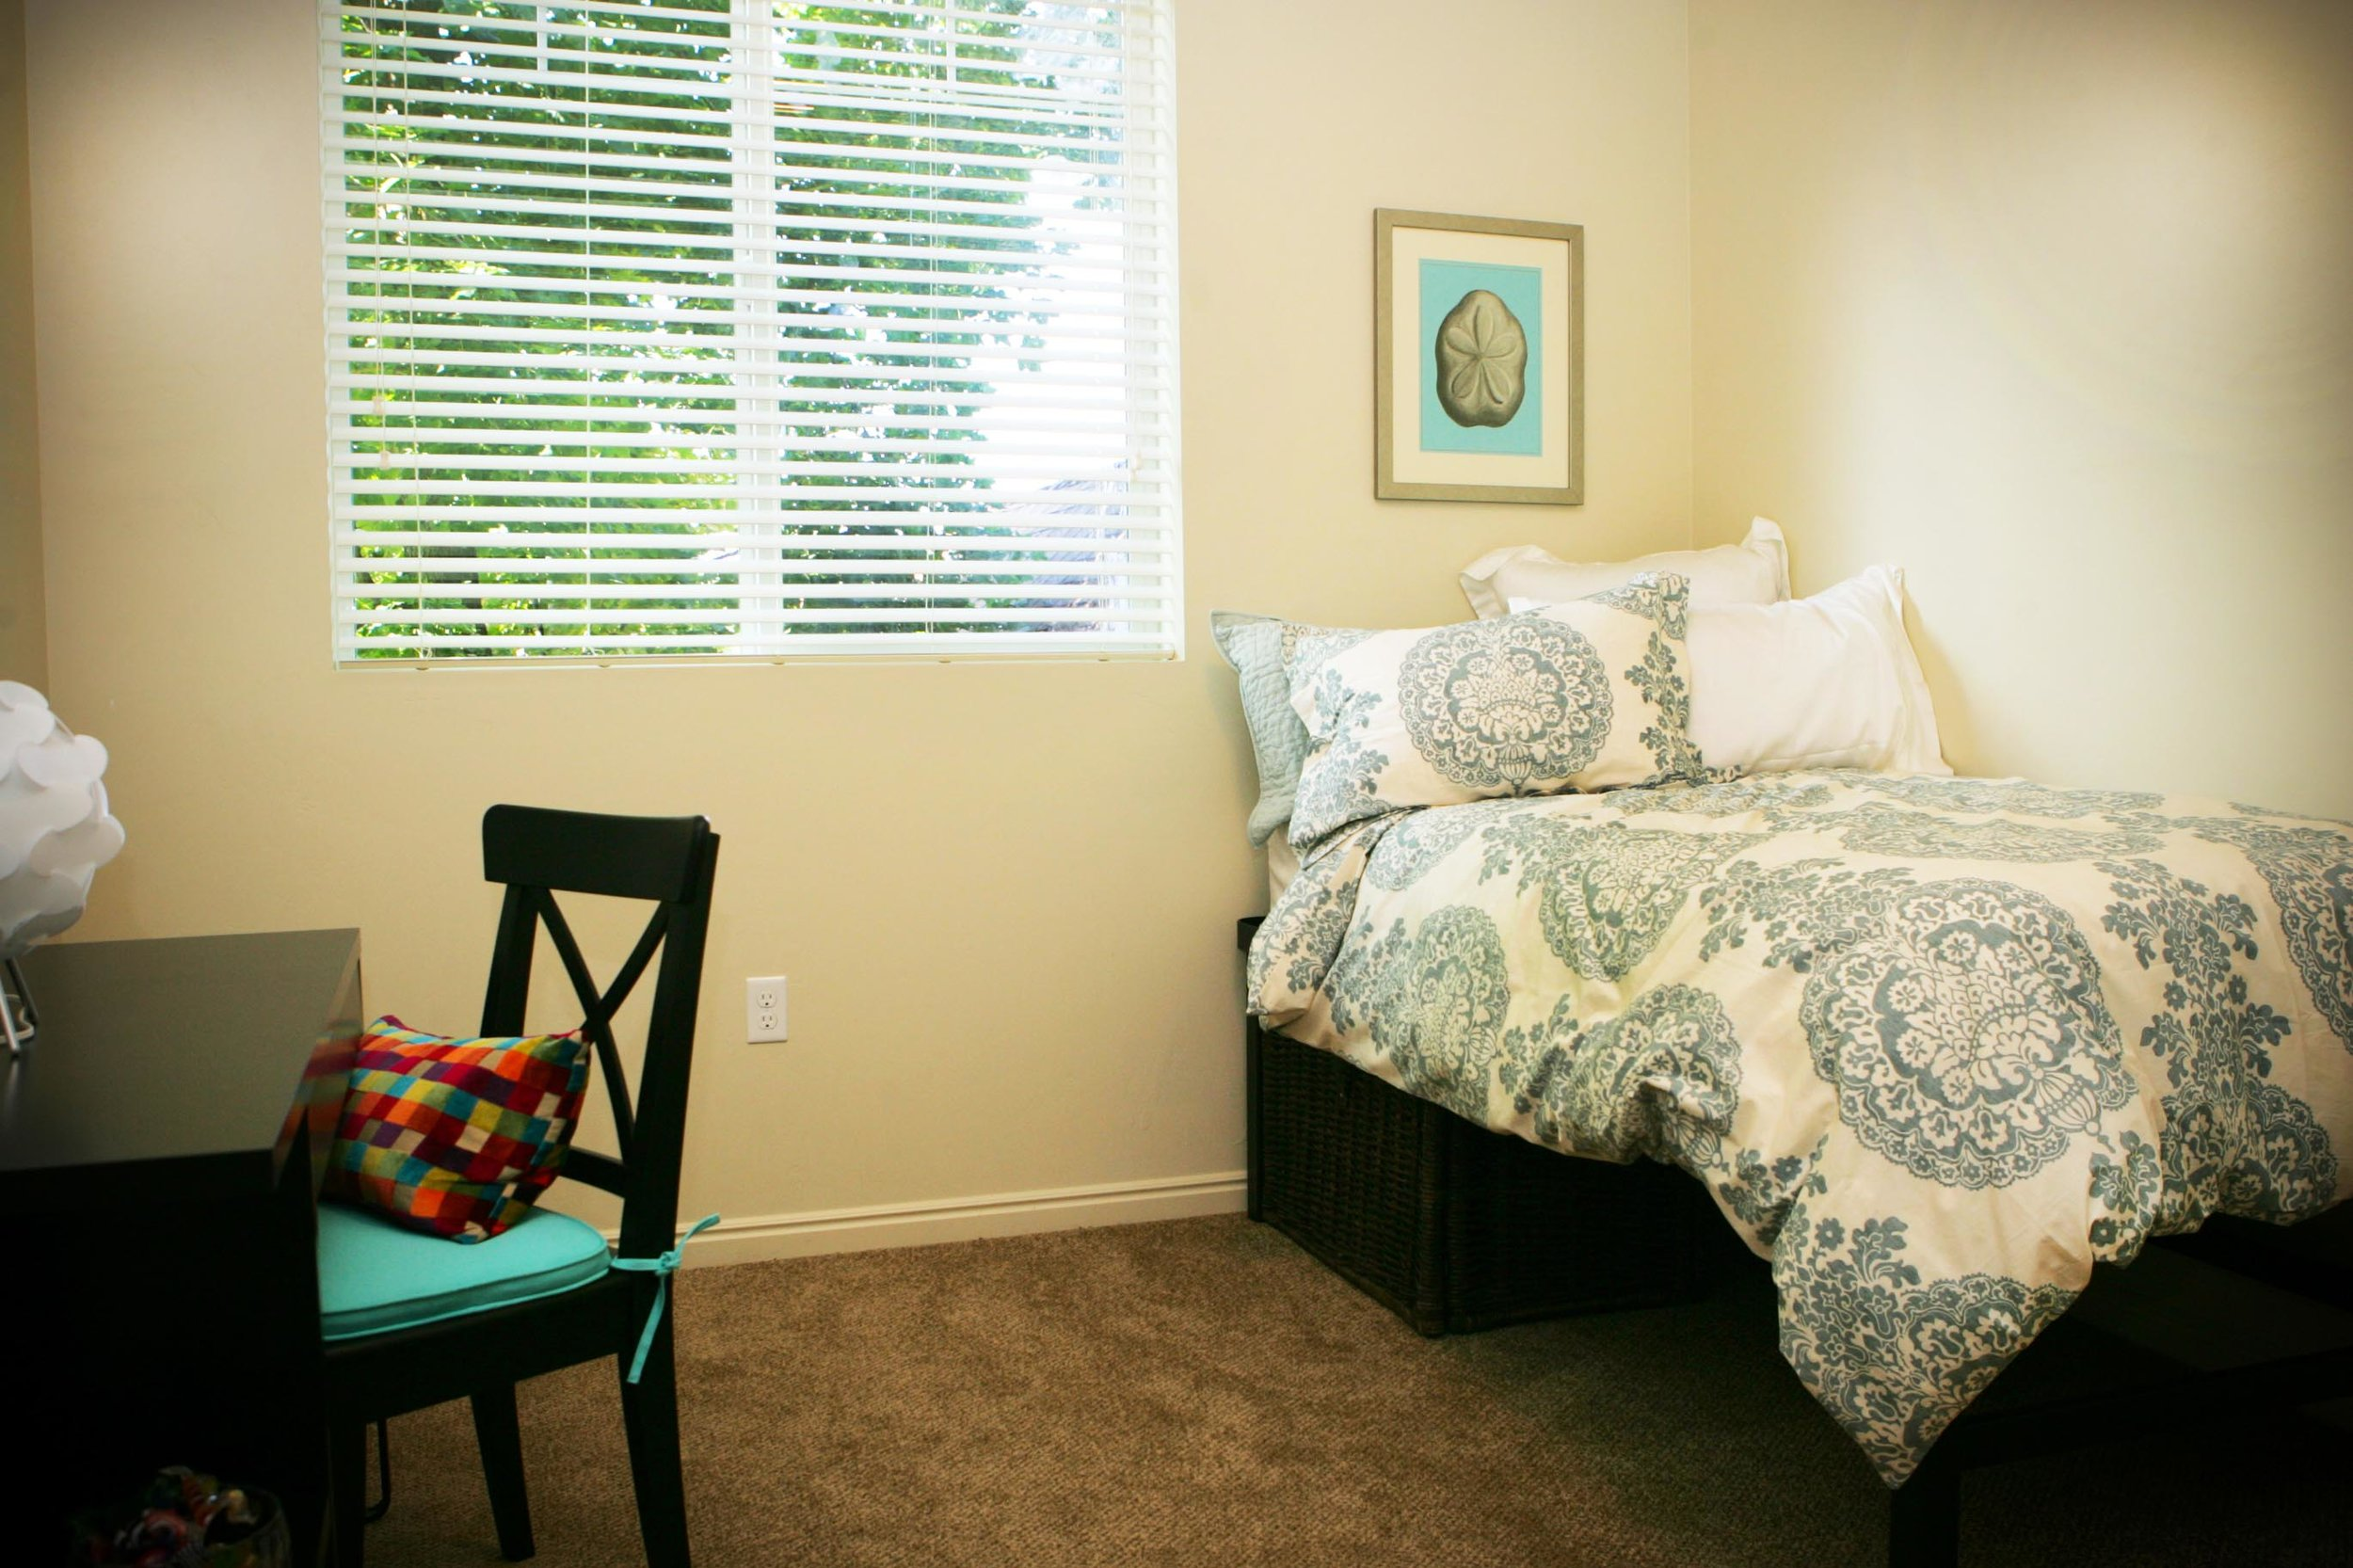 provo accomodation college place bedroom private.jpg